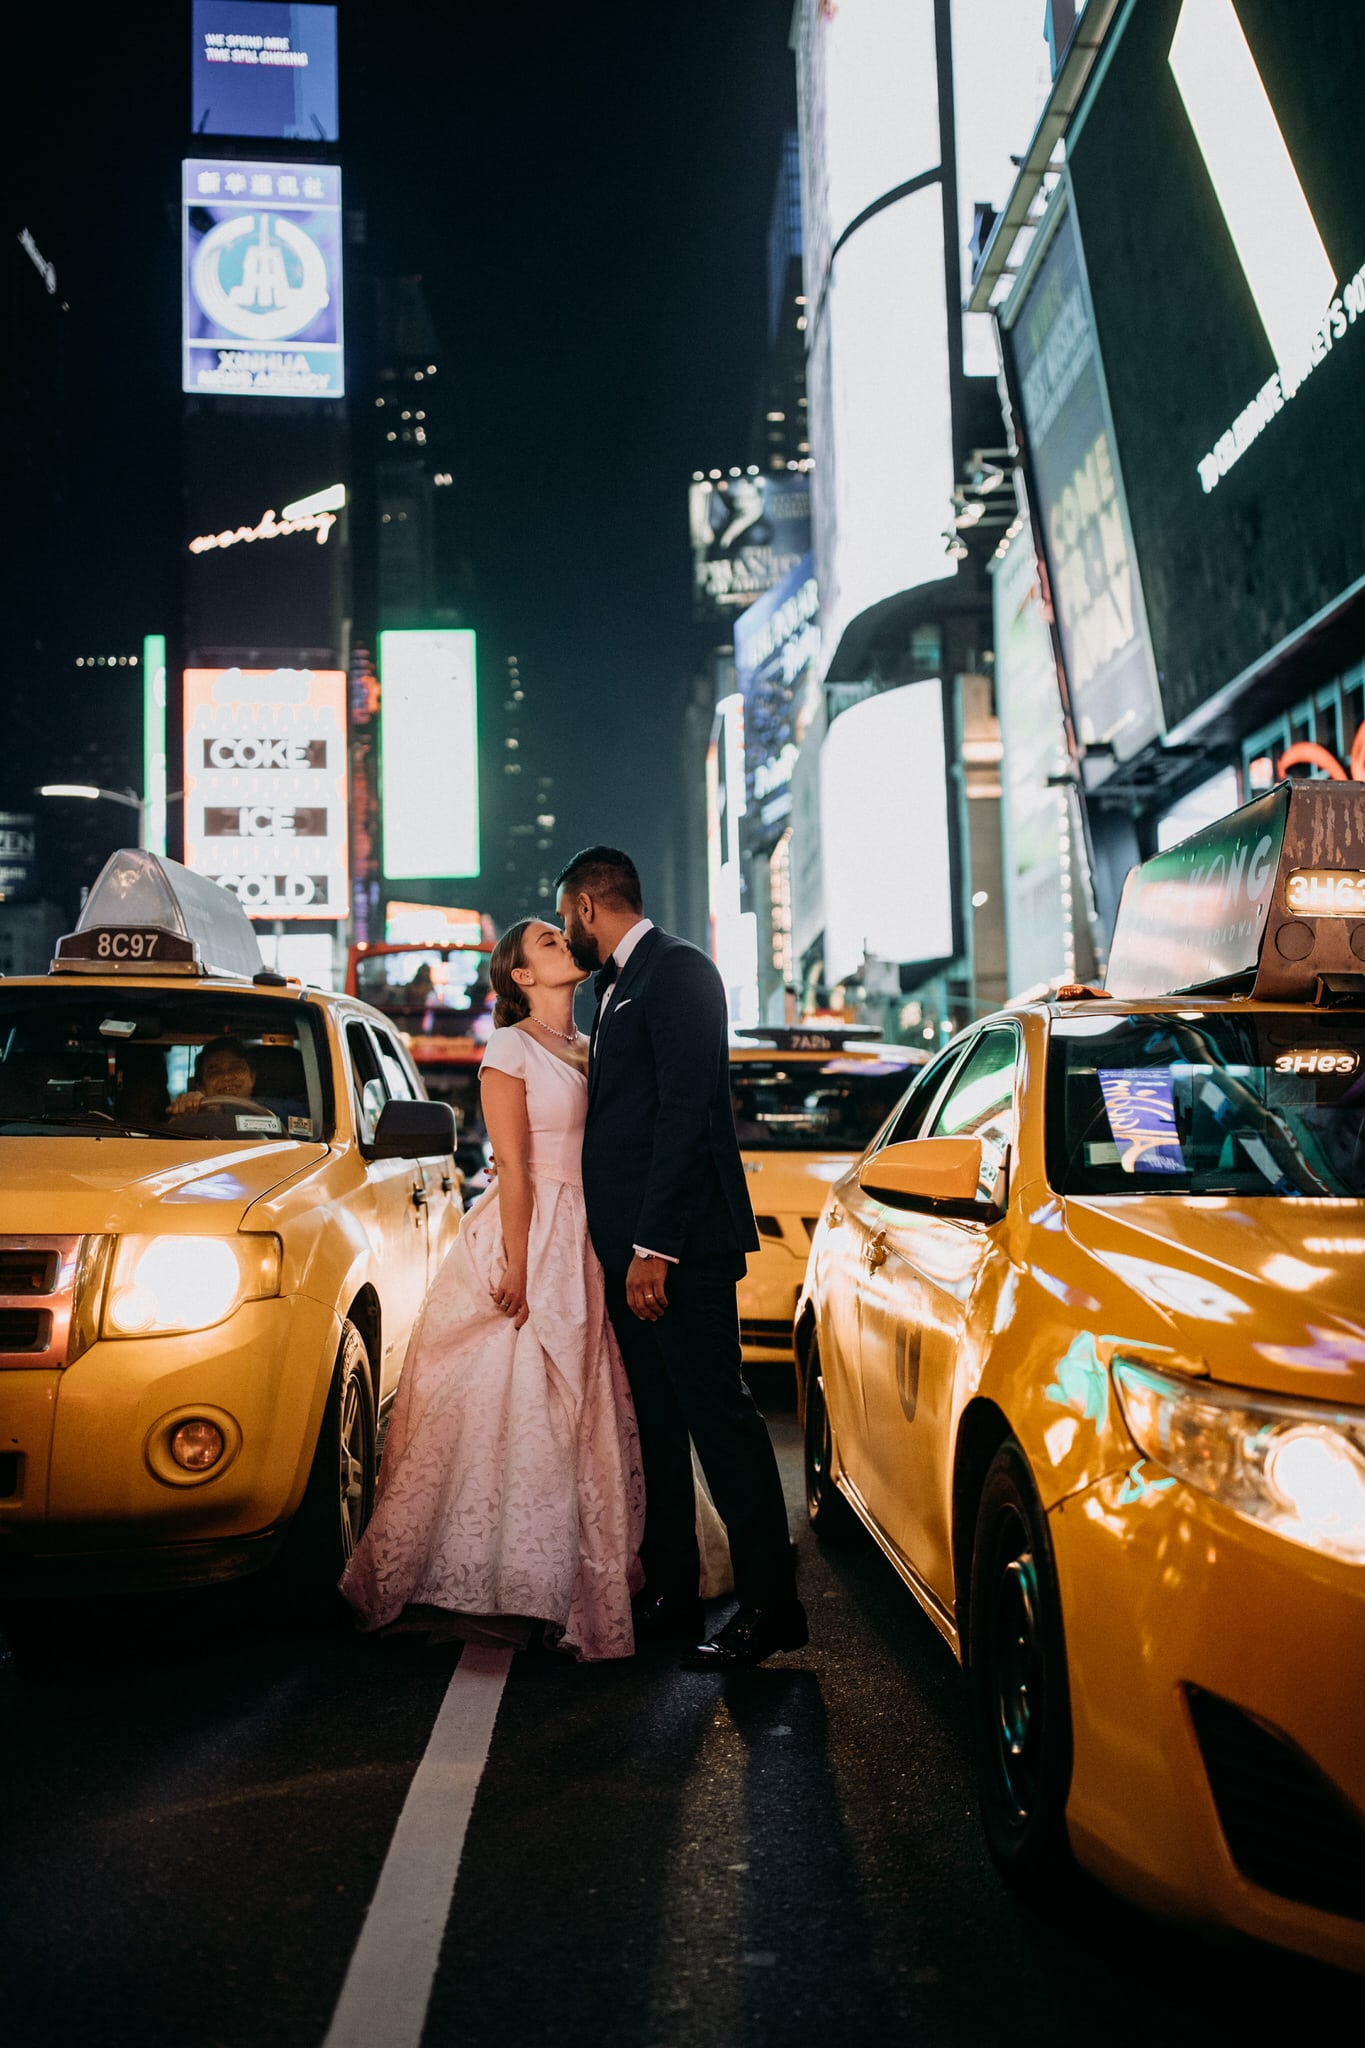 The bride and groom kiss at Times Square in New York City. Wedding Photographer Brent Calis.